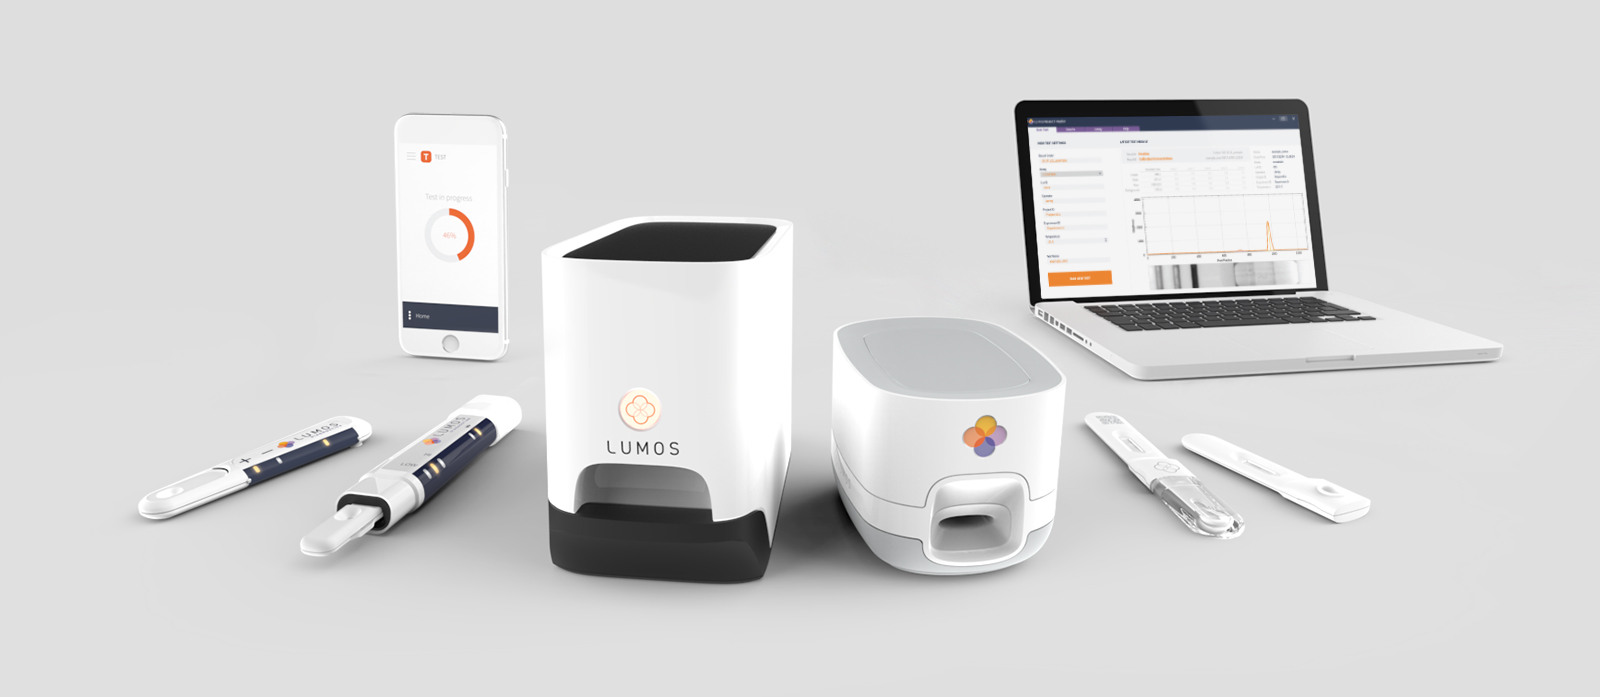 Lumos product suite